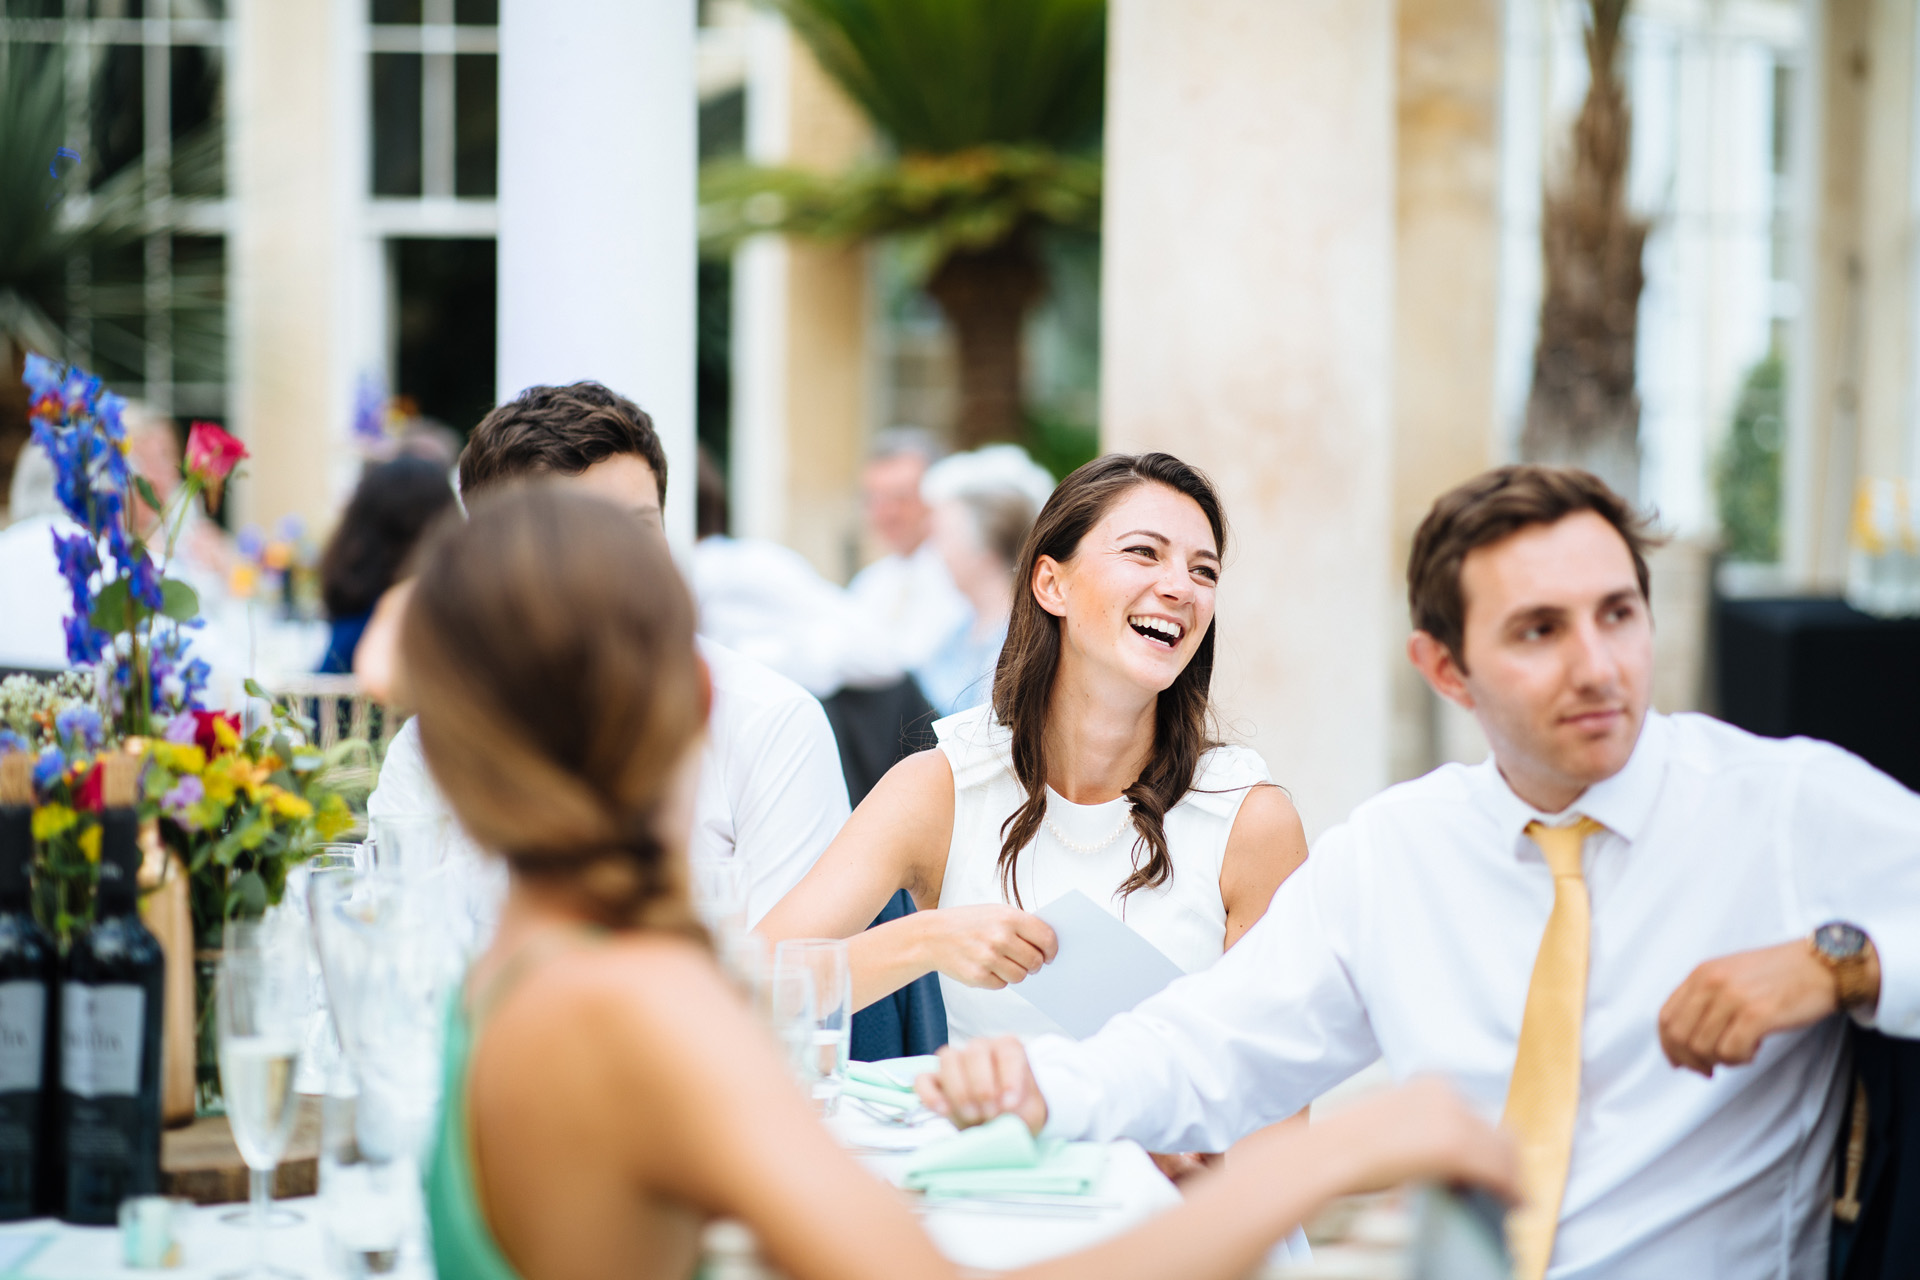 lady with brown hair laughing at grooms speech